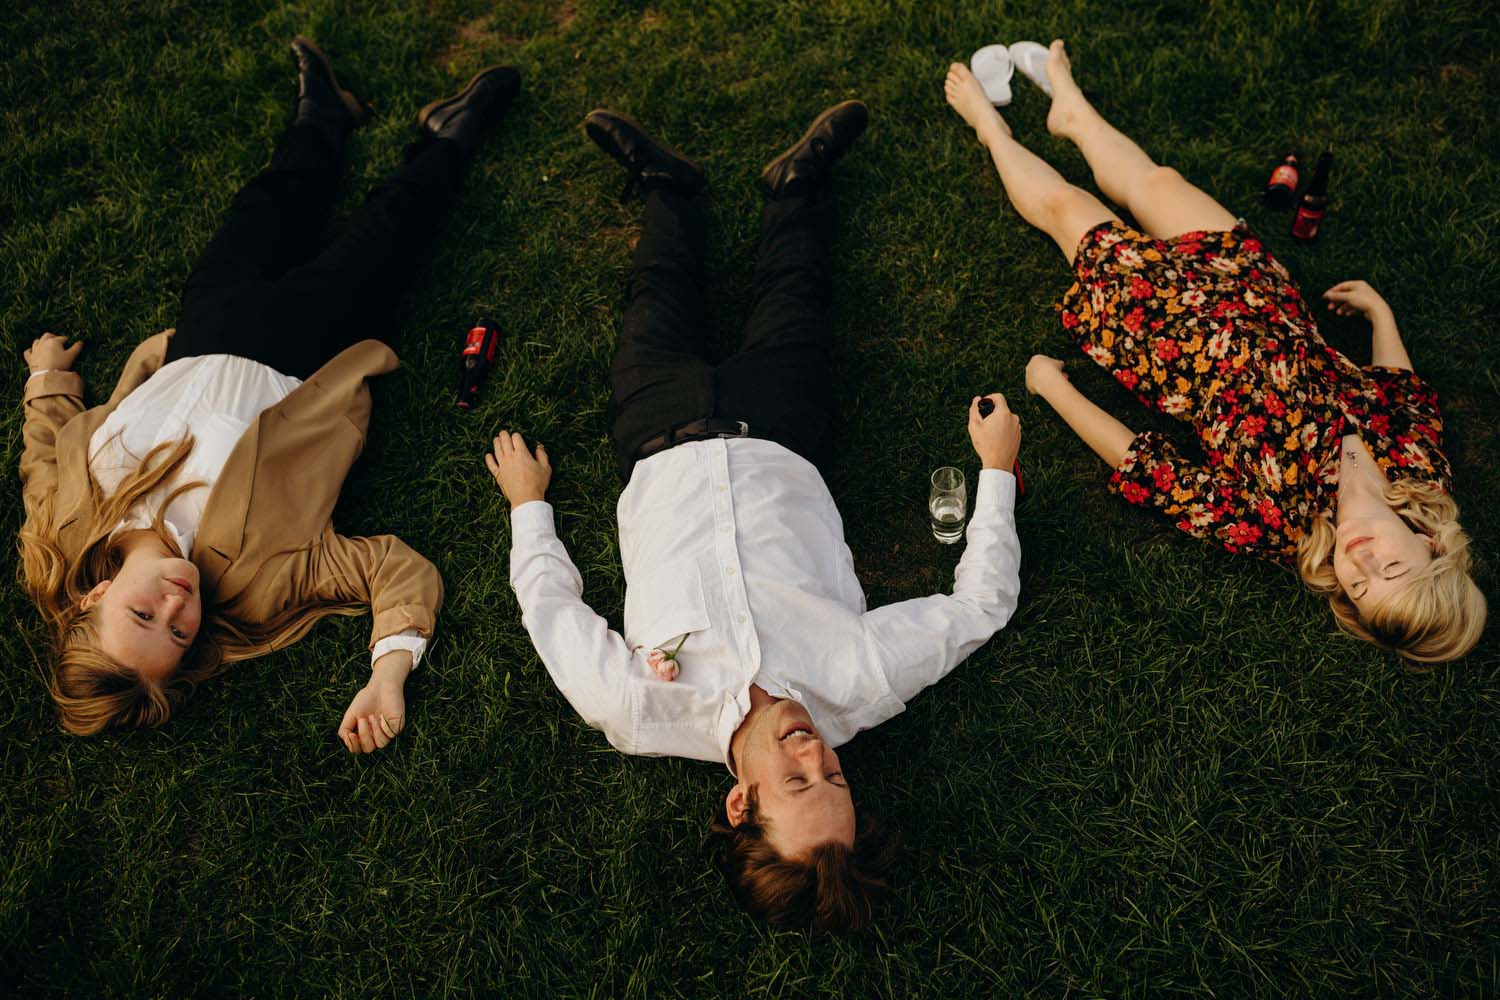 3 people lie down on grass